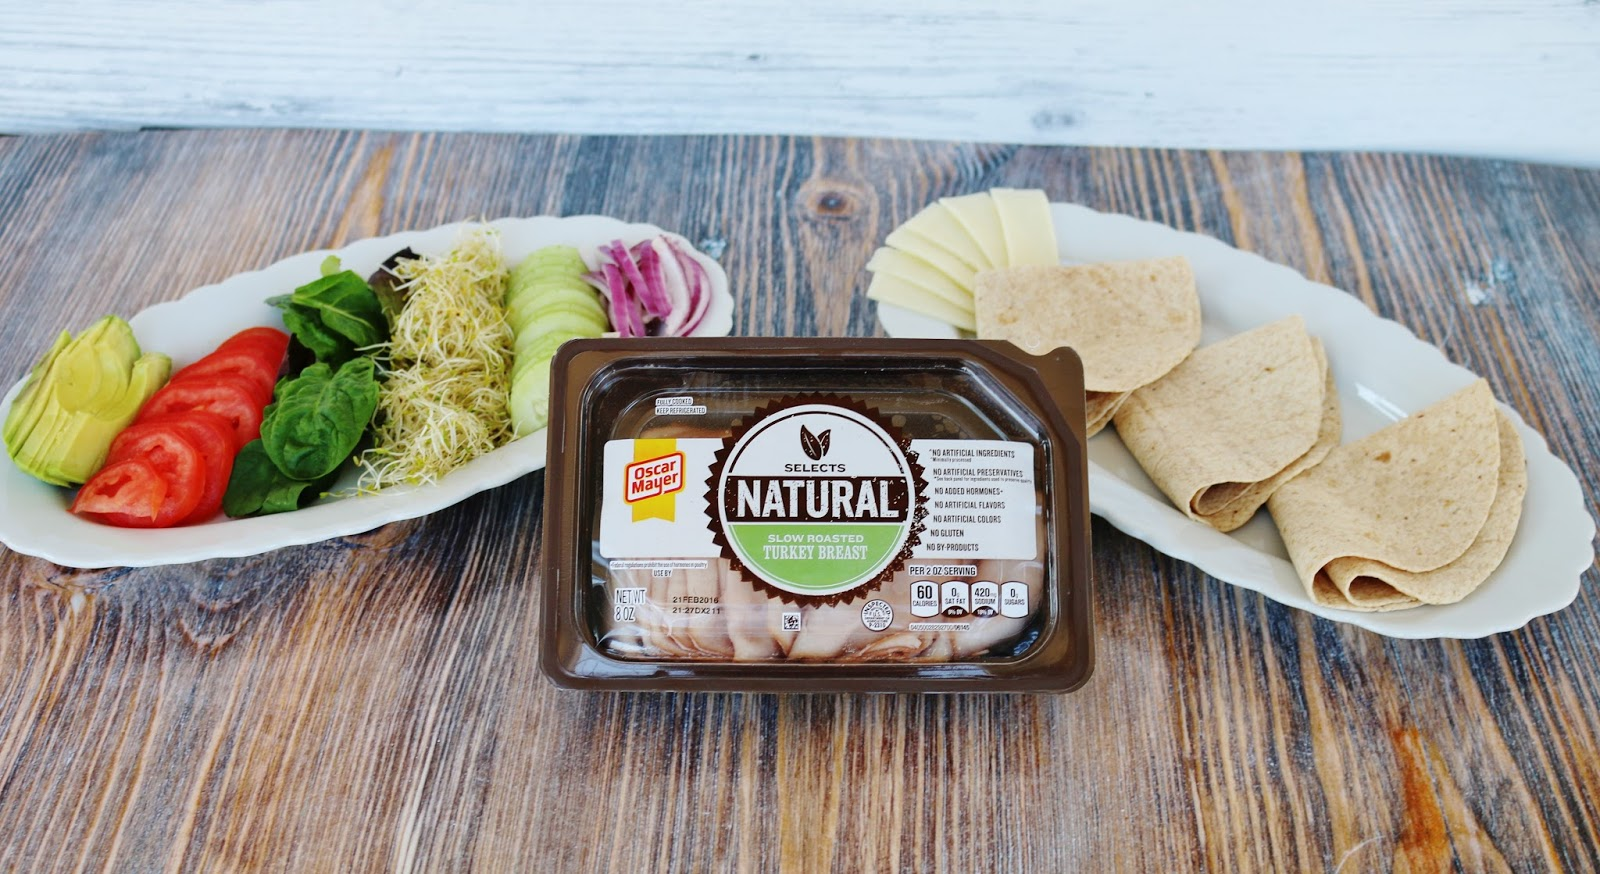 Picky Eaters Whole Wheat Turkey Avocado in addition  further Natural likewise Target Oscar Mayer Meat Cheese Plate 2 29 together with Oscar Mayer Portable Protein Packs Just 1 17 New Sale Coupon Safeway. on oscar mayer natural meat and cheese plates